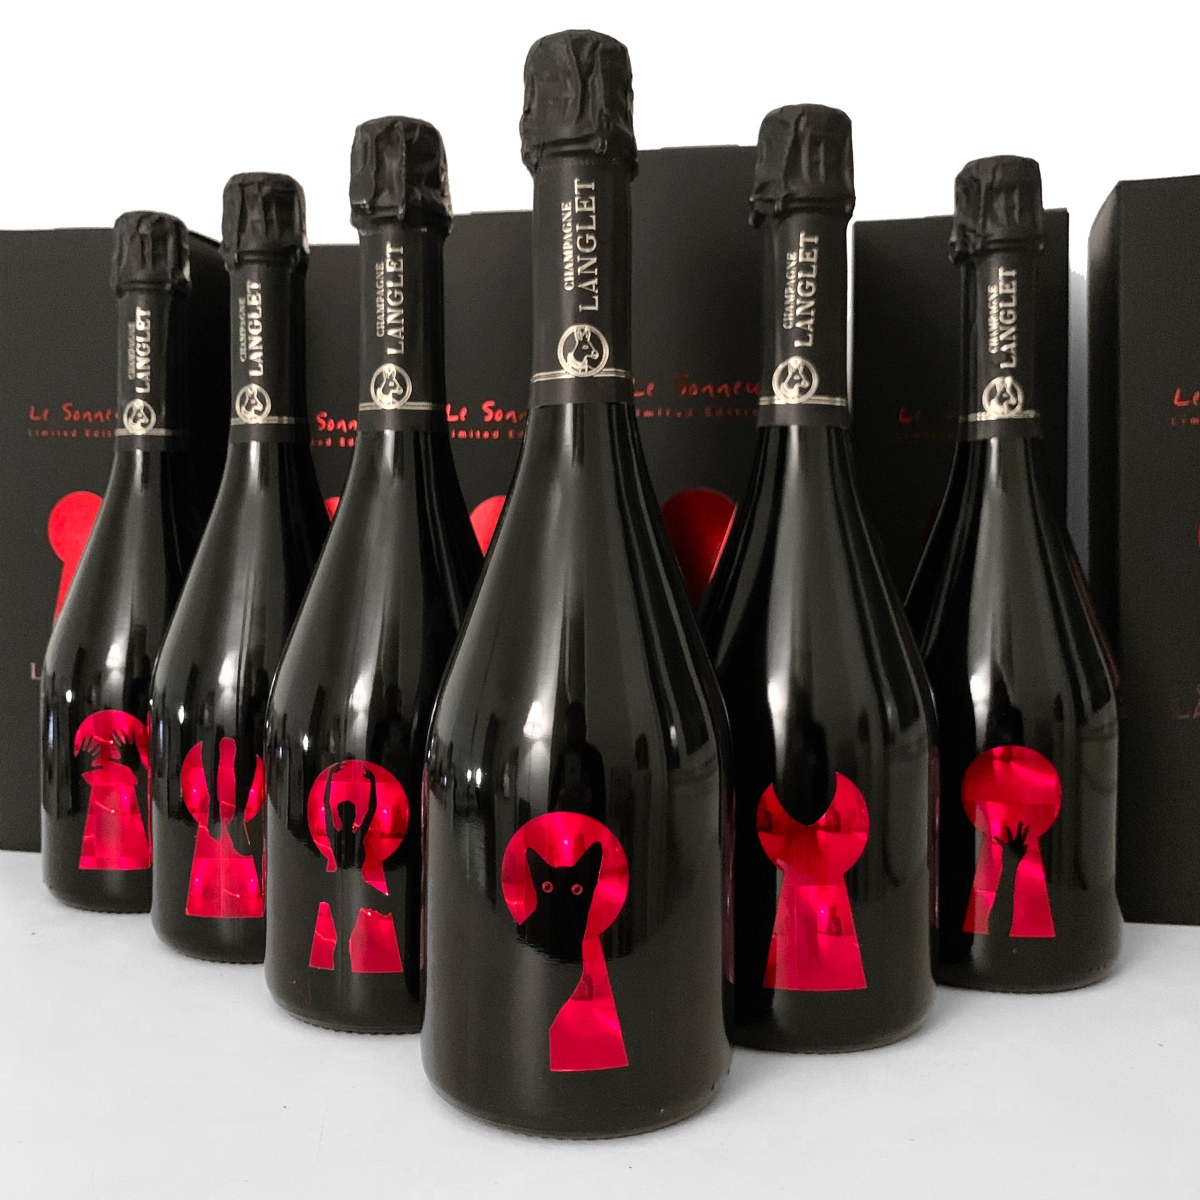 Le Sonneur X Champagne Langlet - Limited Edition - 600 numbered bottles of Vintage Champagne - 2019